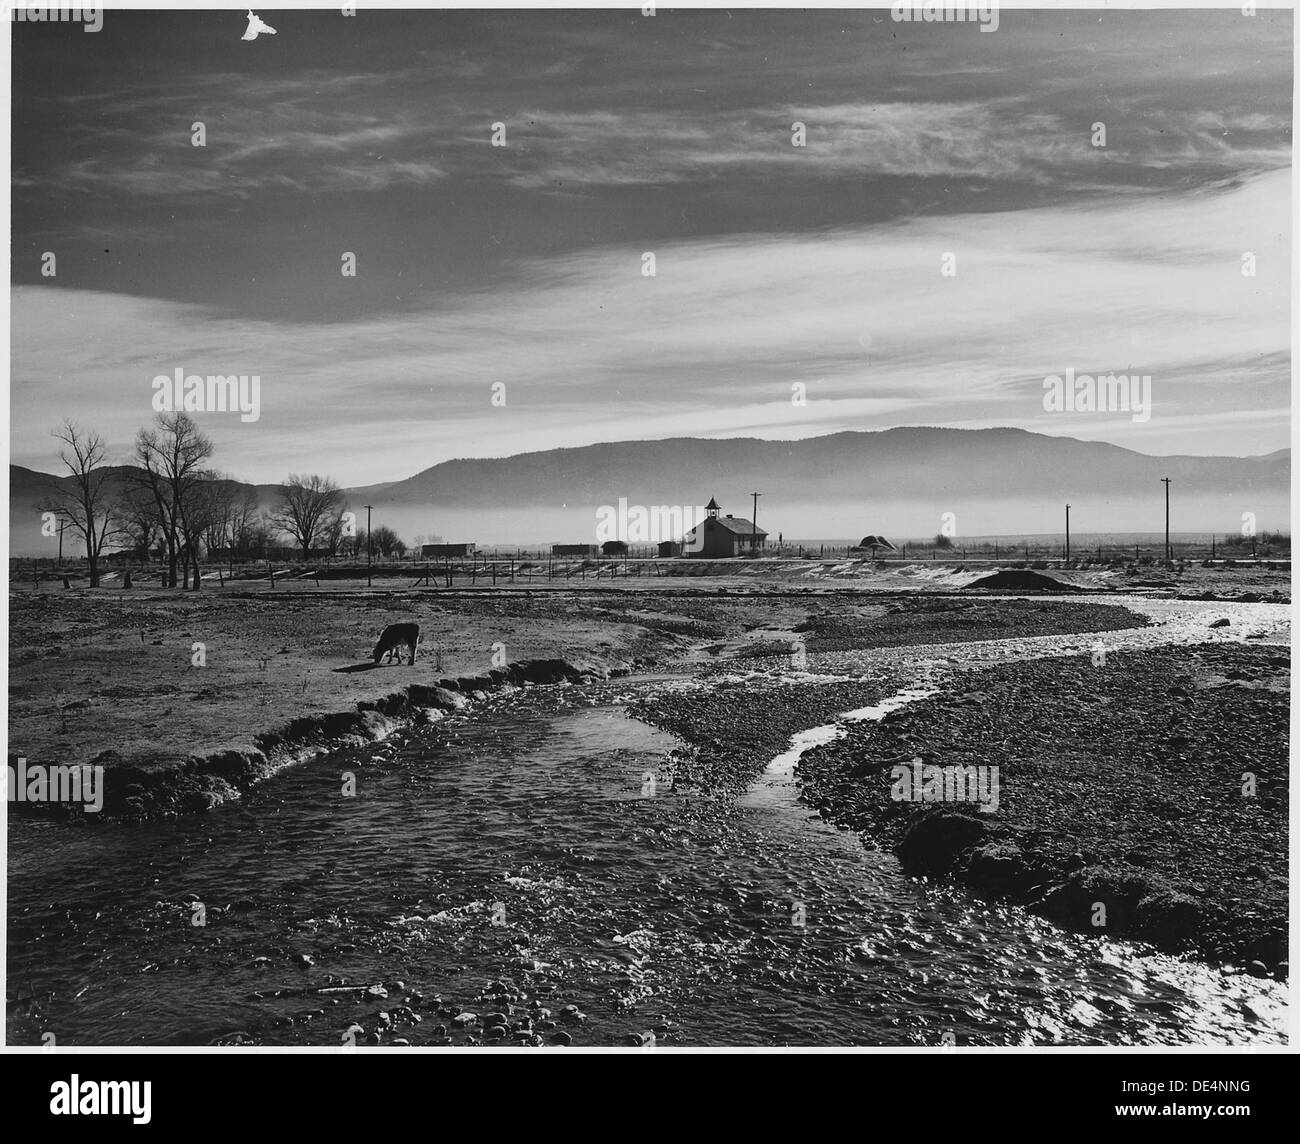 New mexico taos county carson - Stock Photo Taos County New Mexico The Rio Pueblo De Taos Mist In Taos Valley In The A M 521818